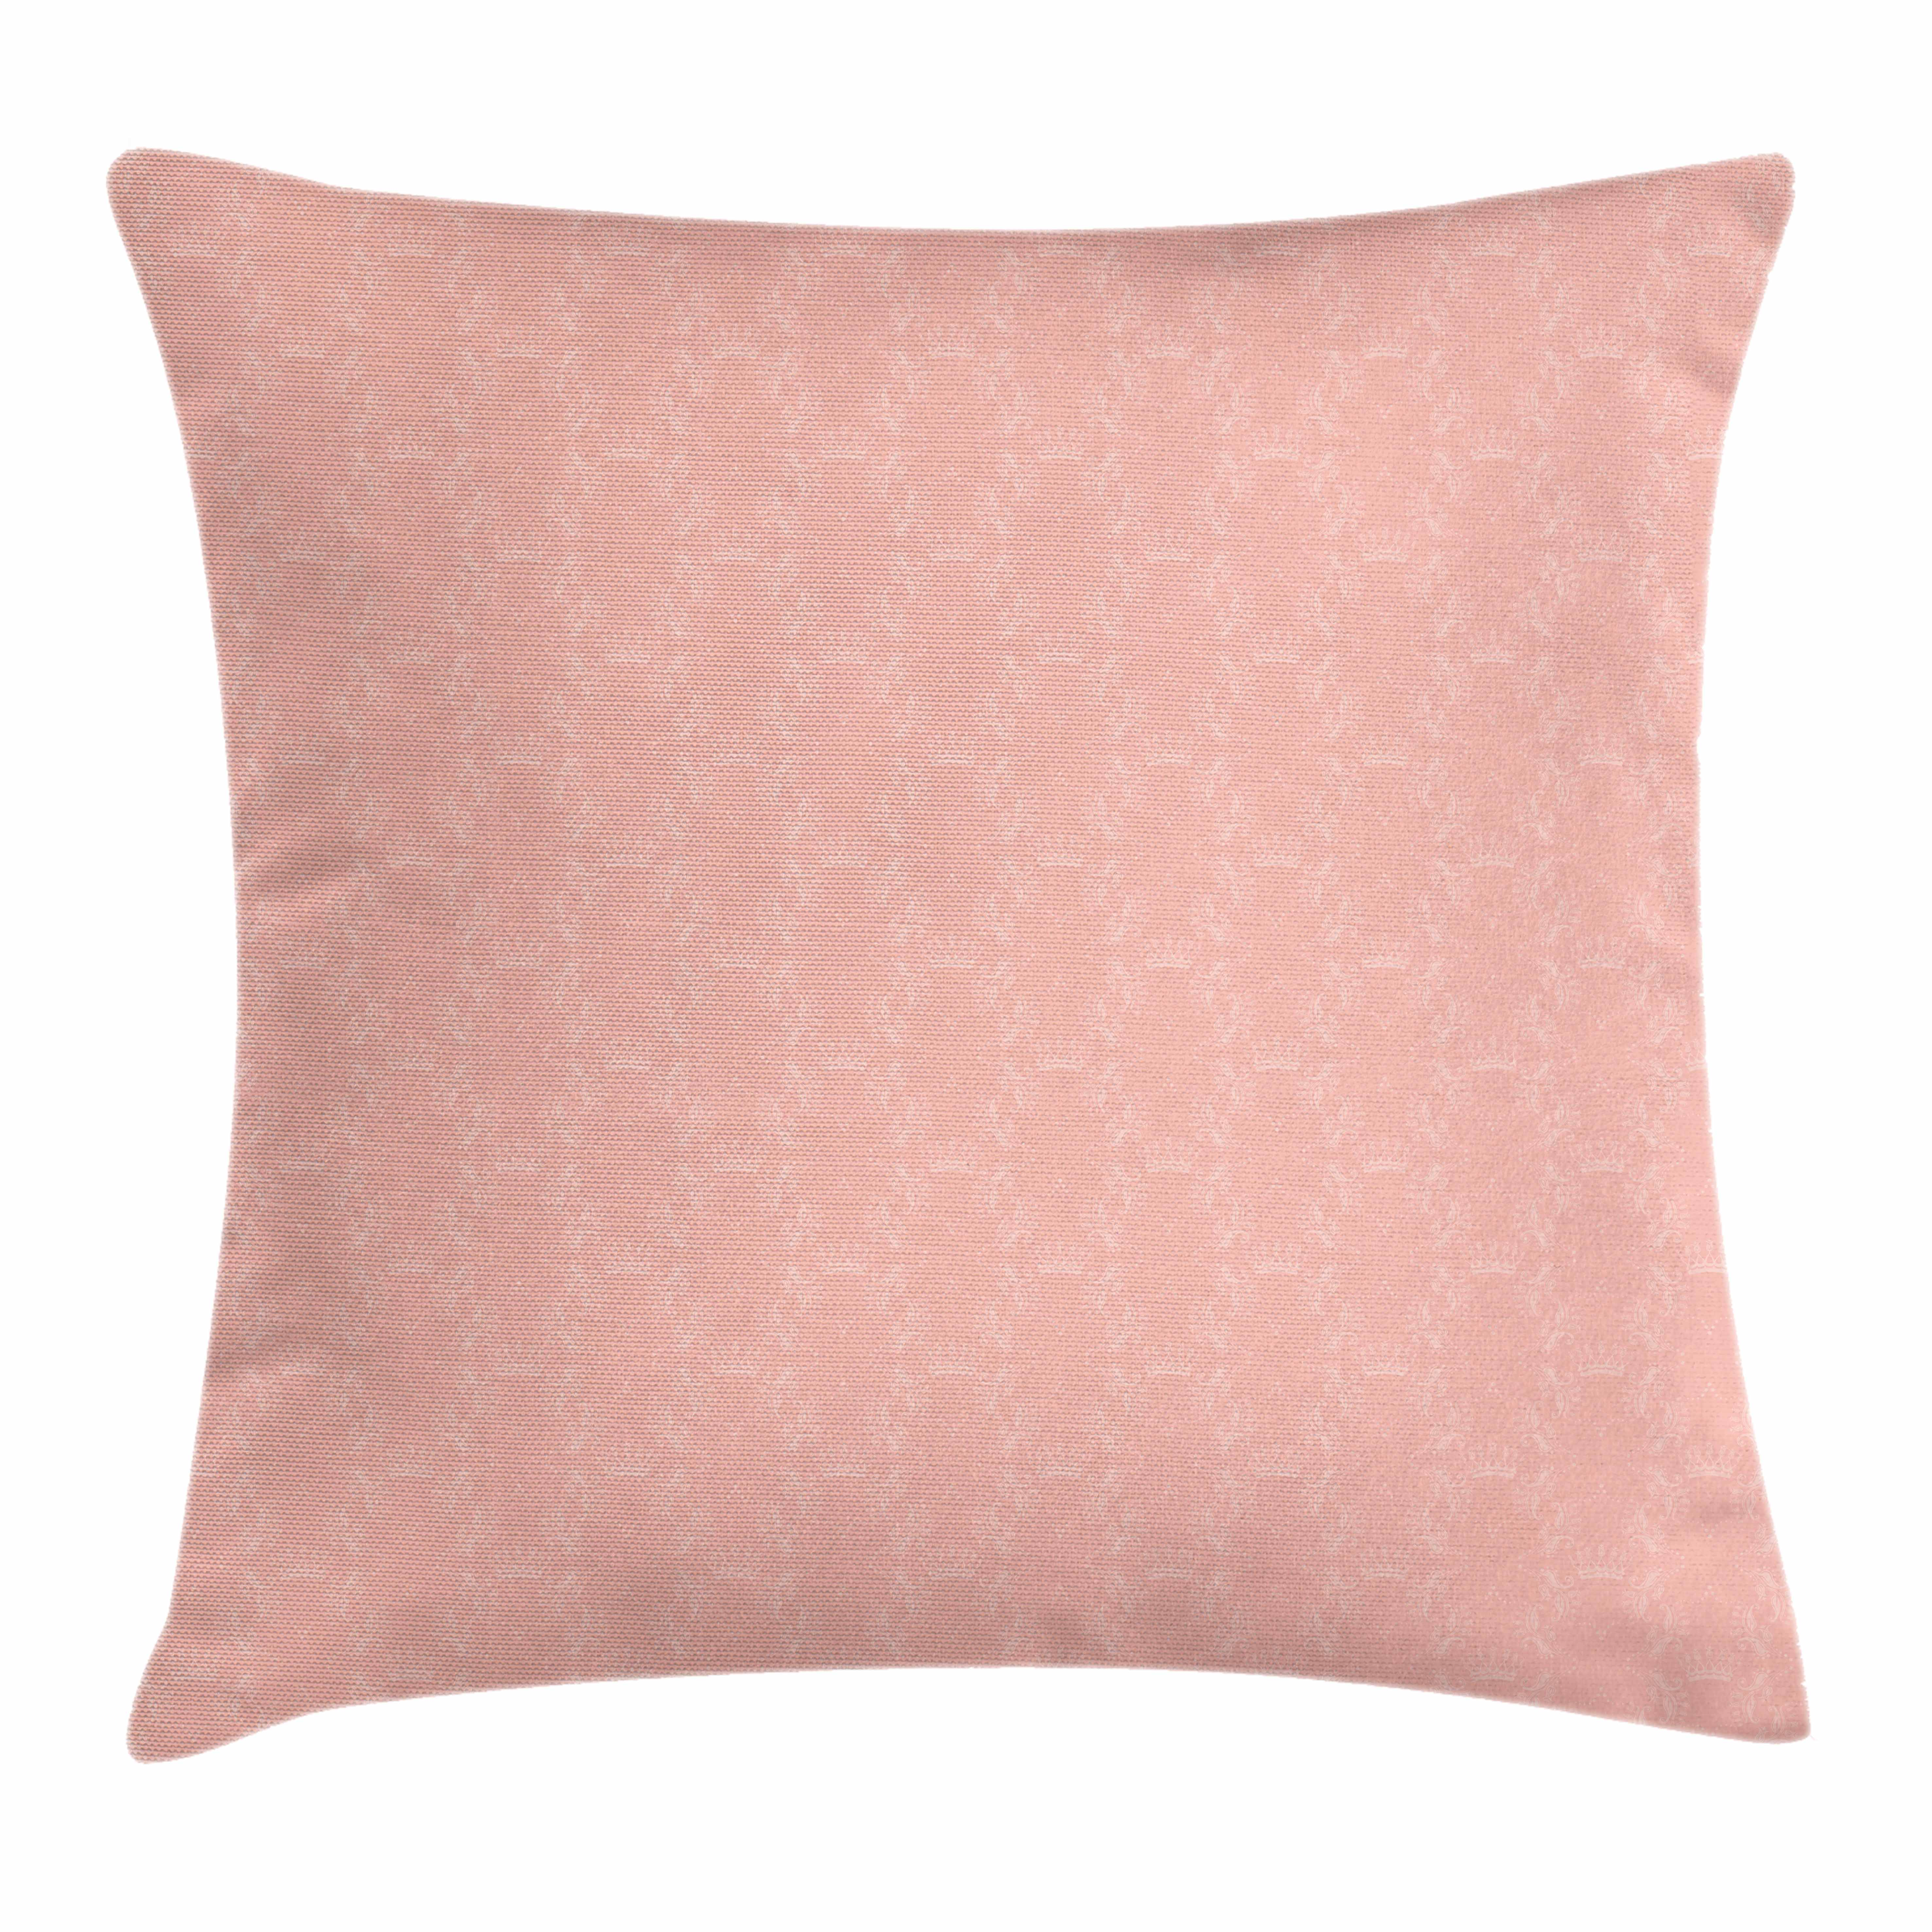 Peach Throw Pillow Cushion Cover Soft Colored Background With